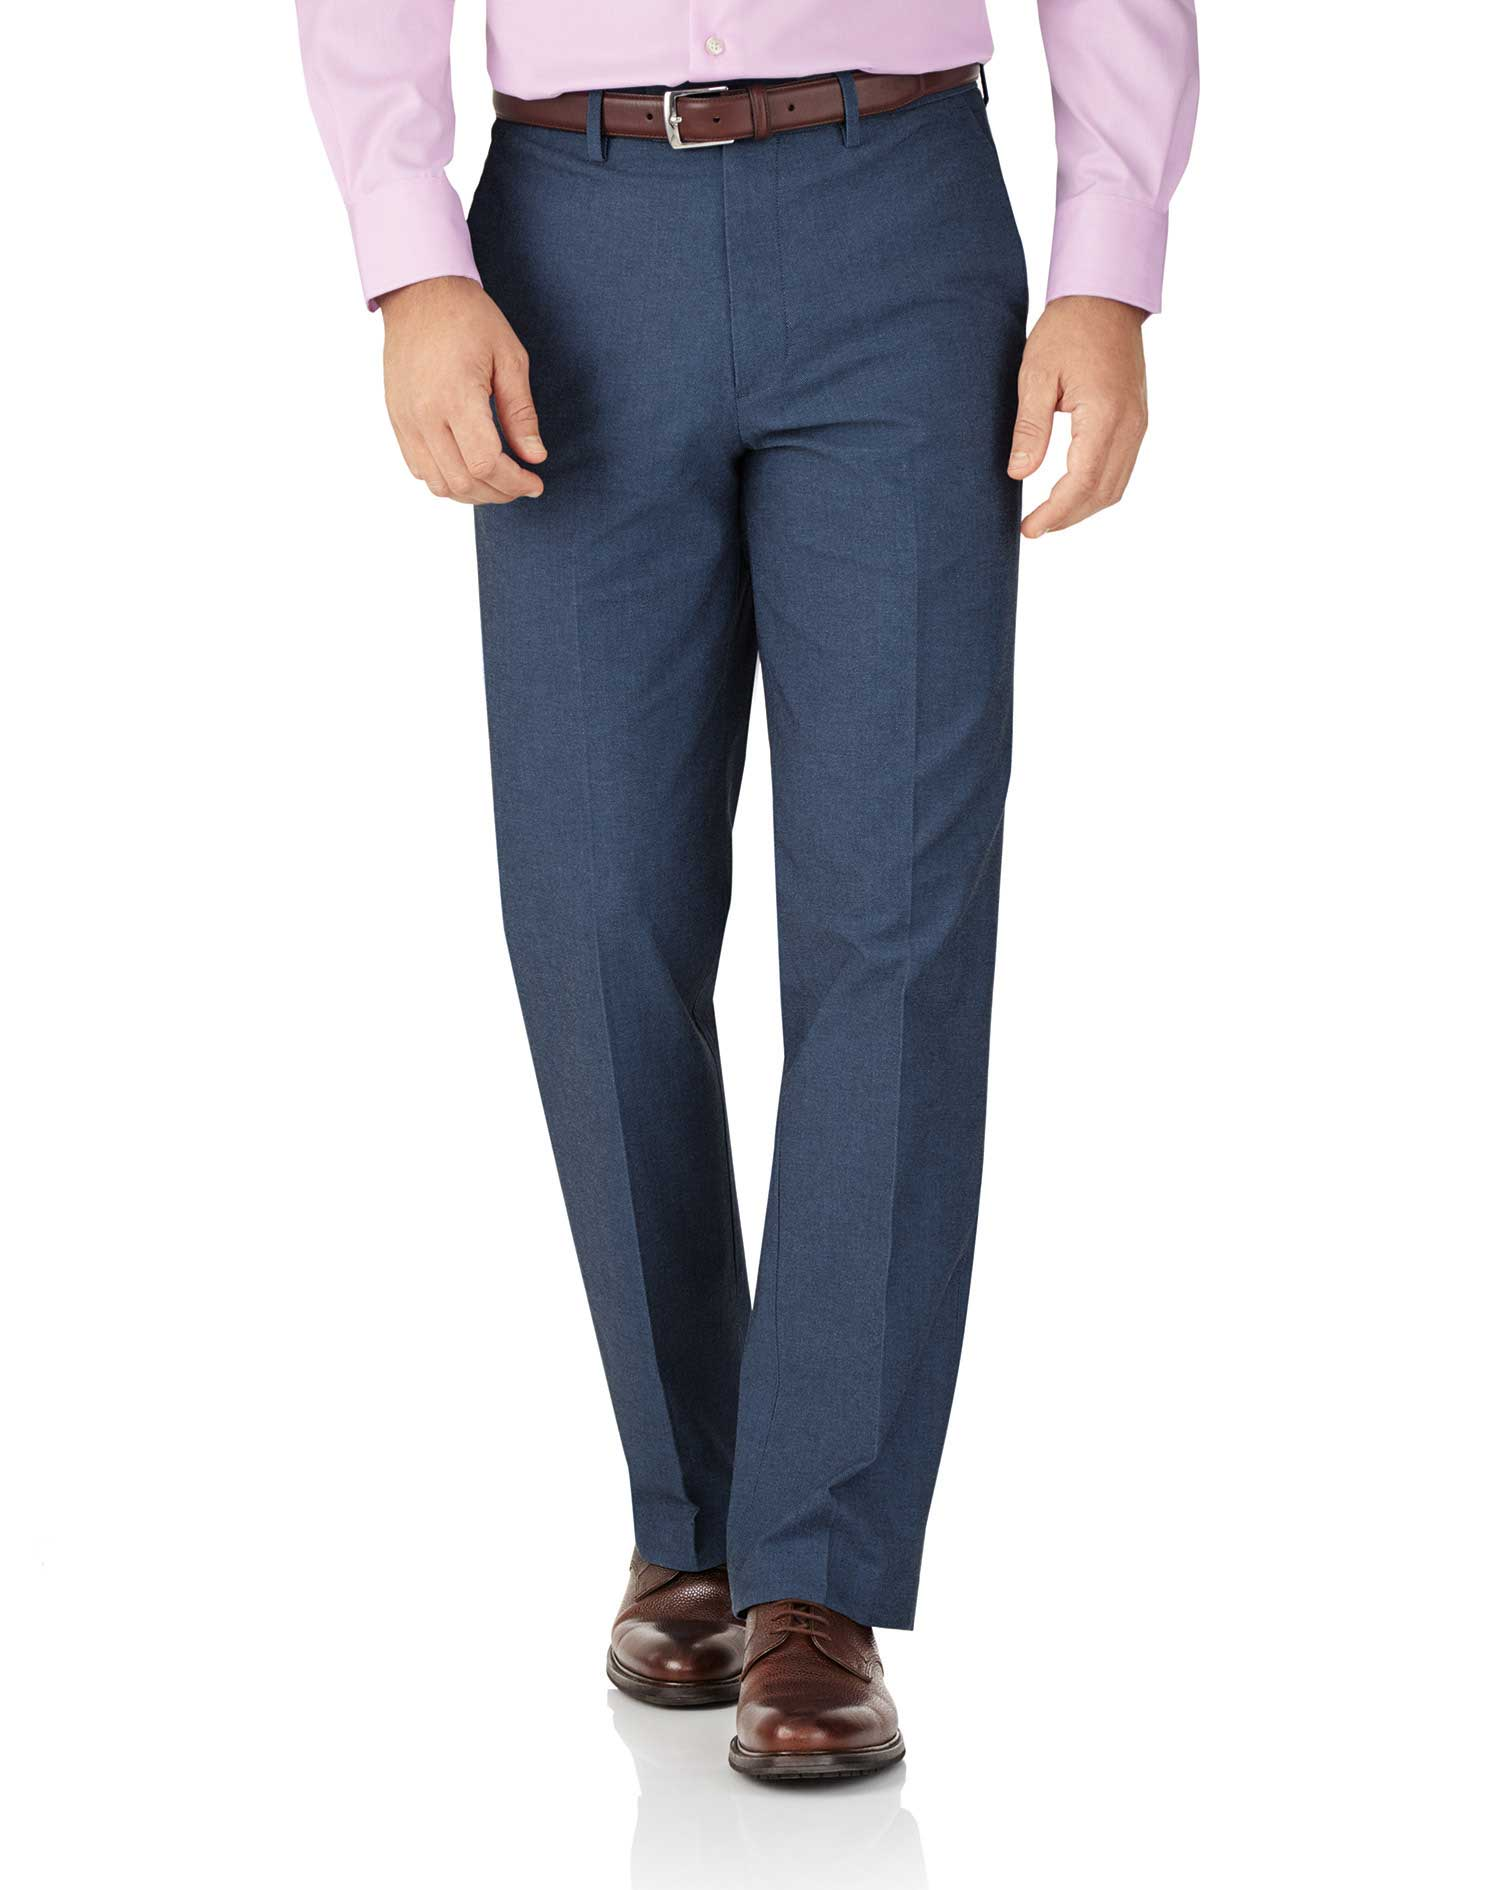 Indigo Classic Fit Stretch Cavalry Twill Trousers Size W36 L30 by Charles Tyrwhitt